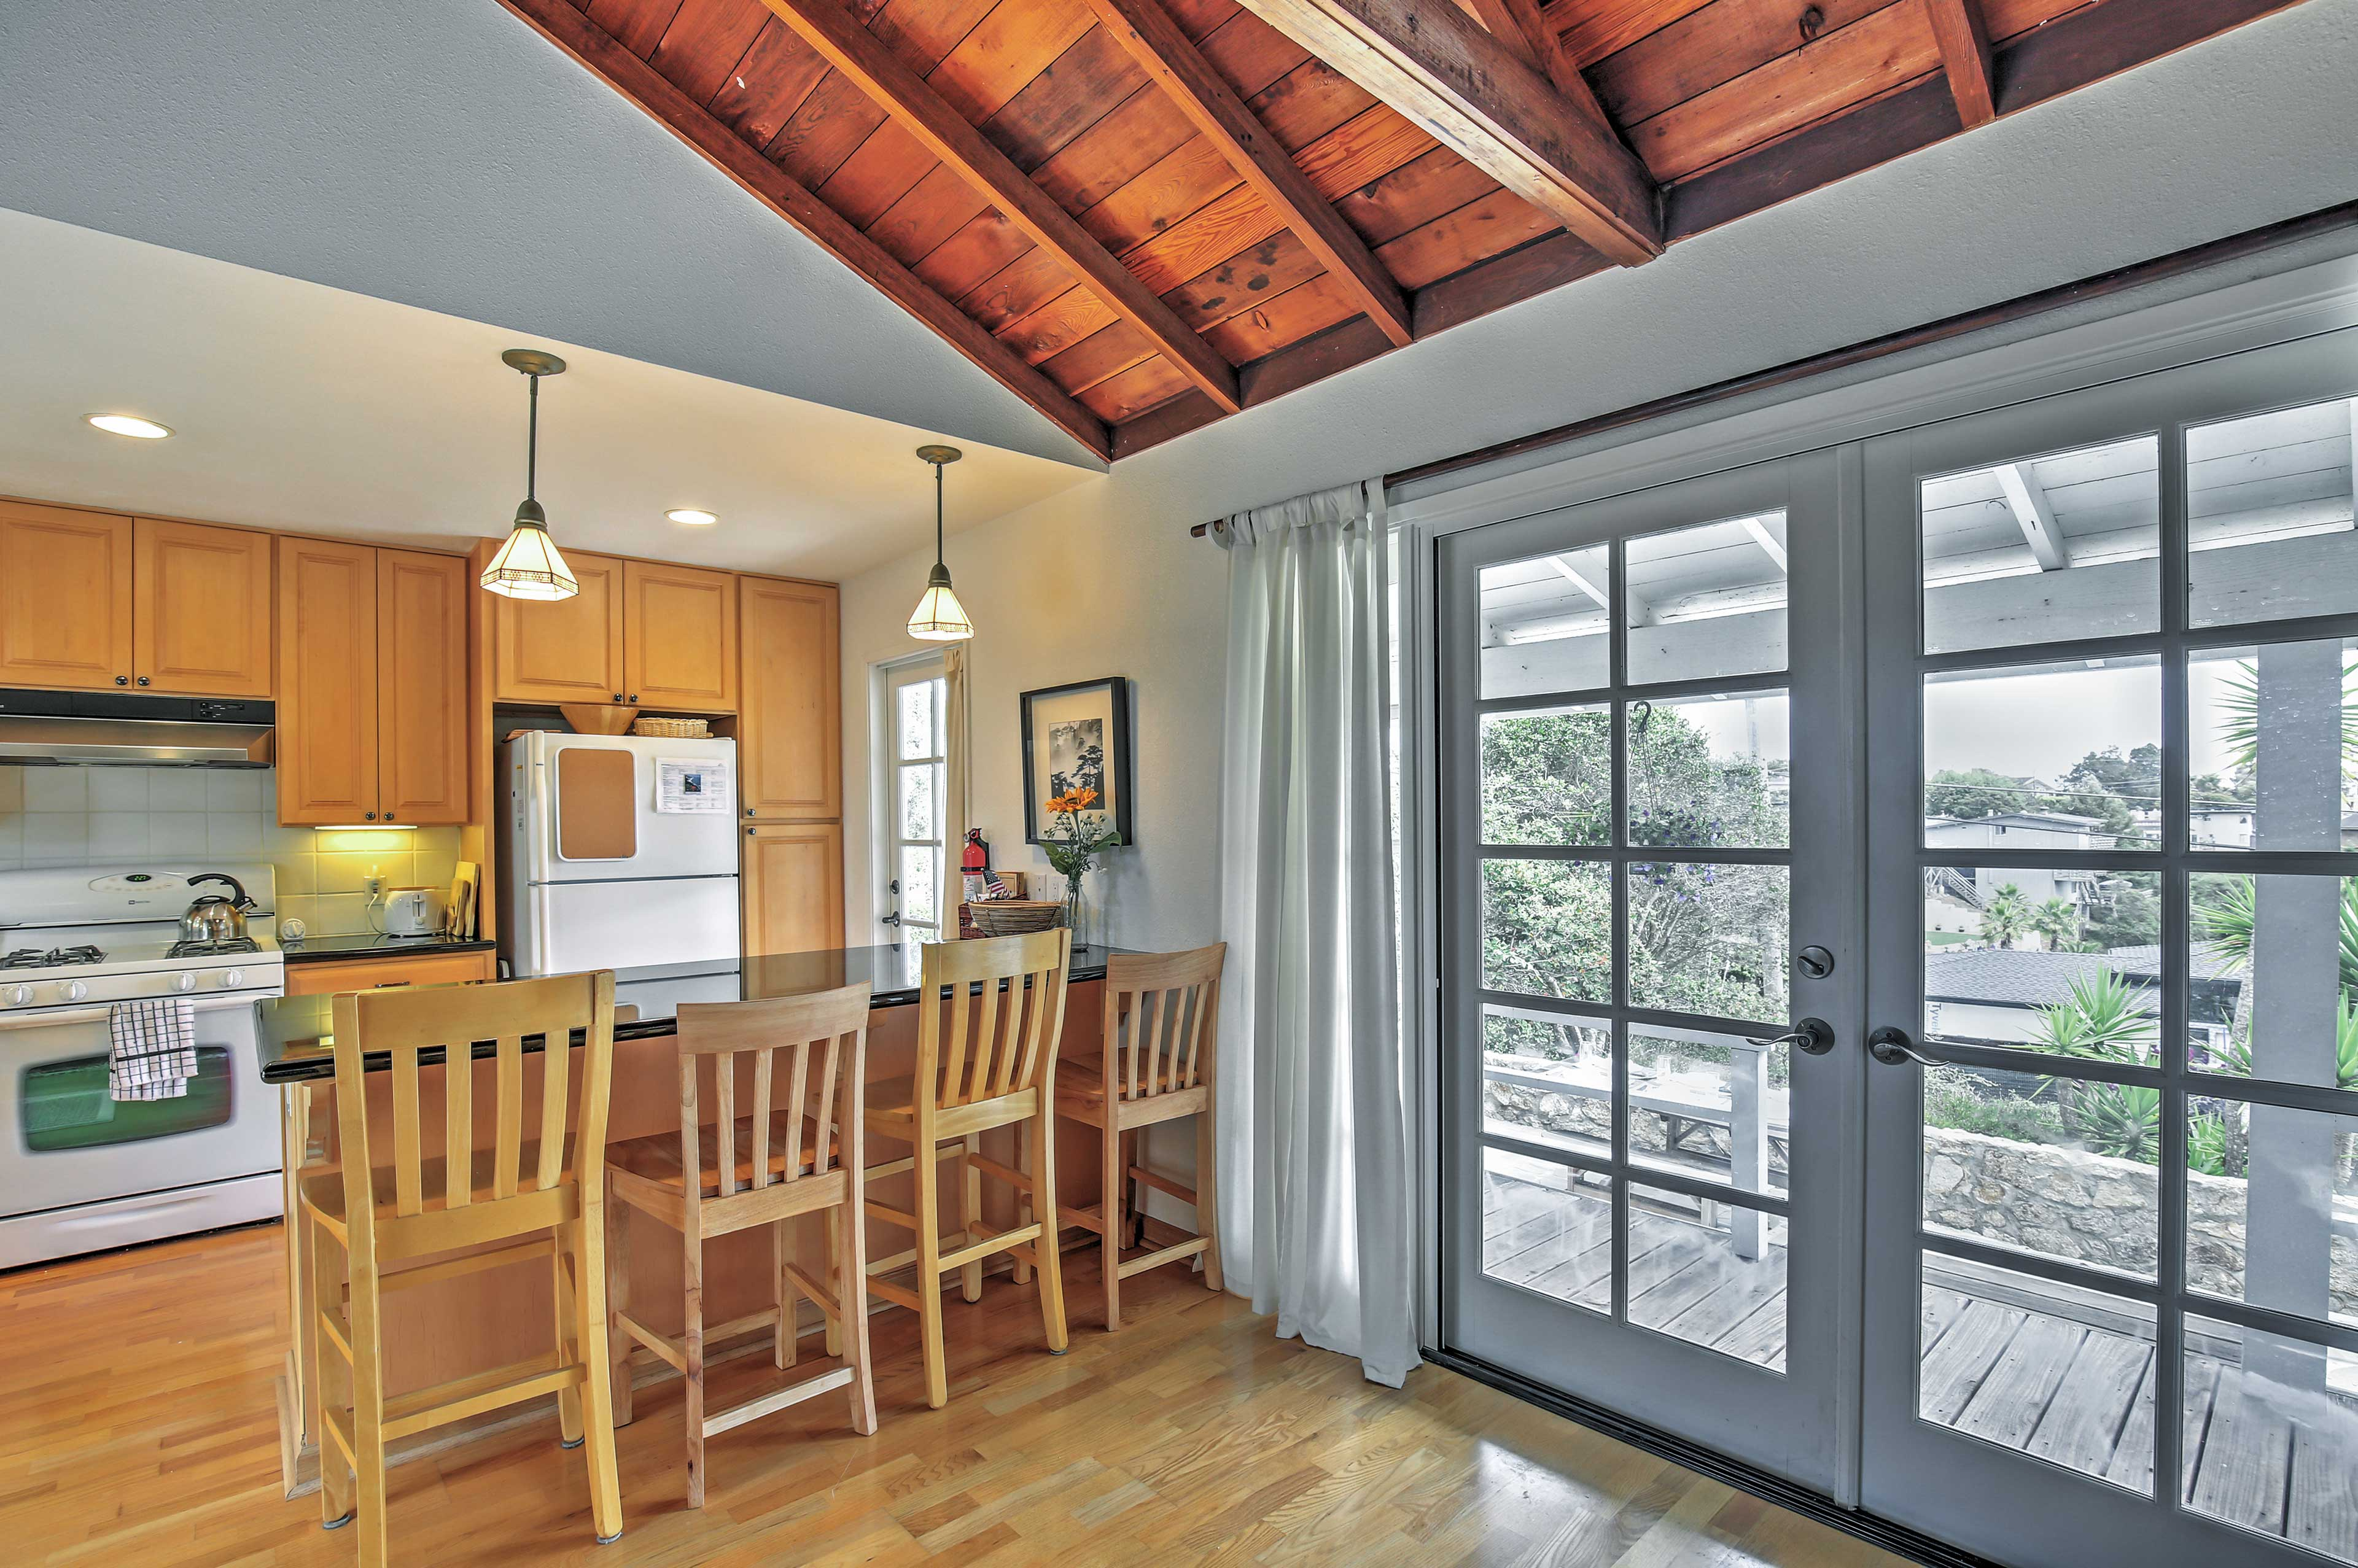 You'll love the character of this 1940's cottage with vaulted cedar beam ceilings.